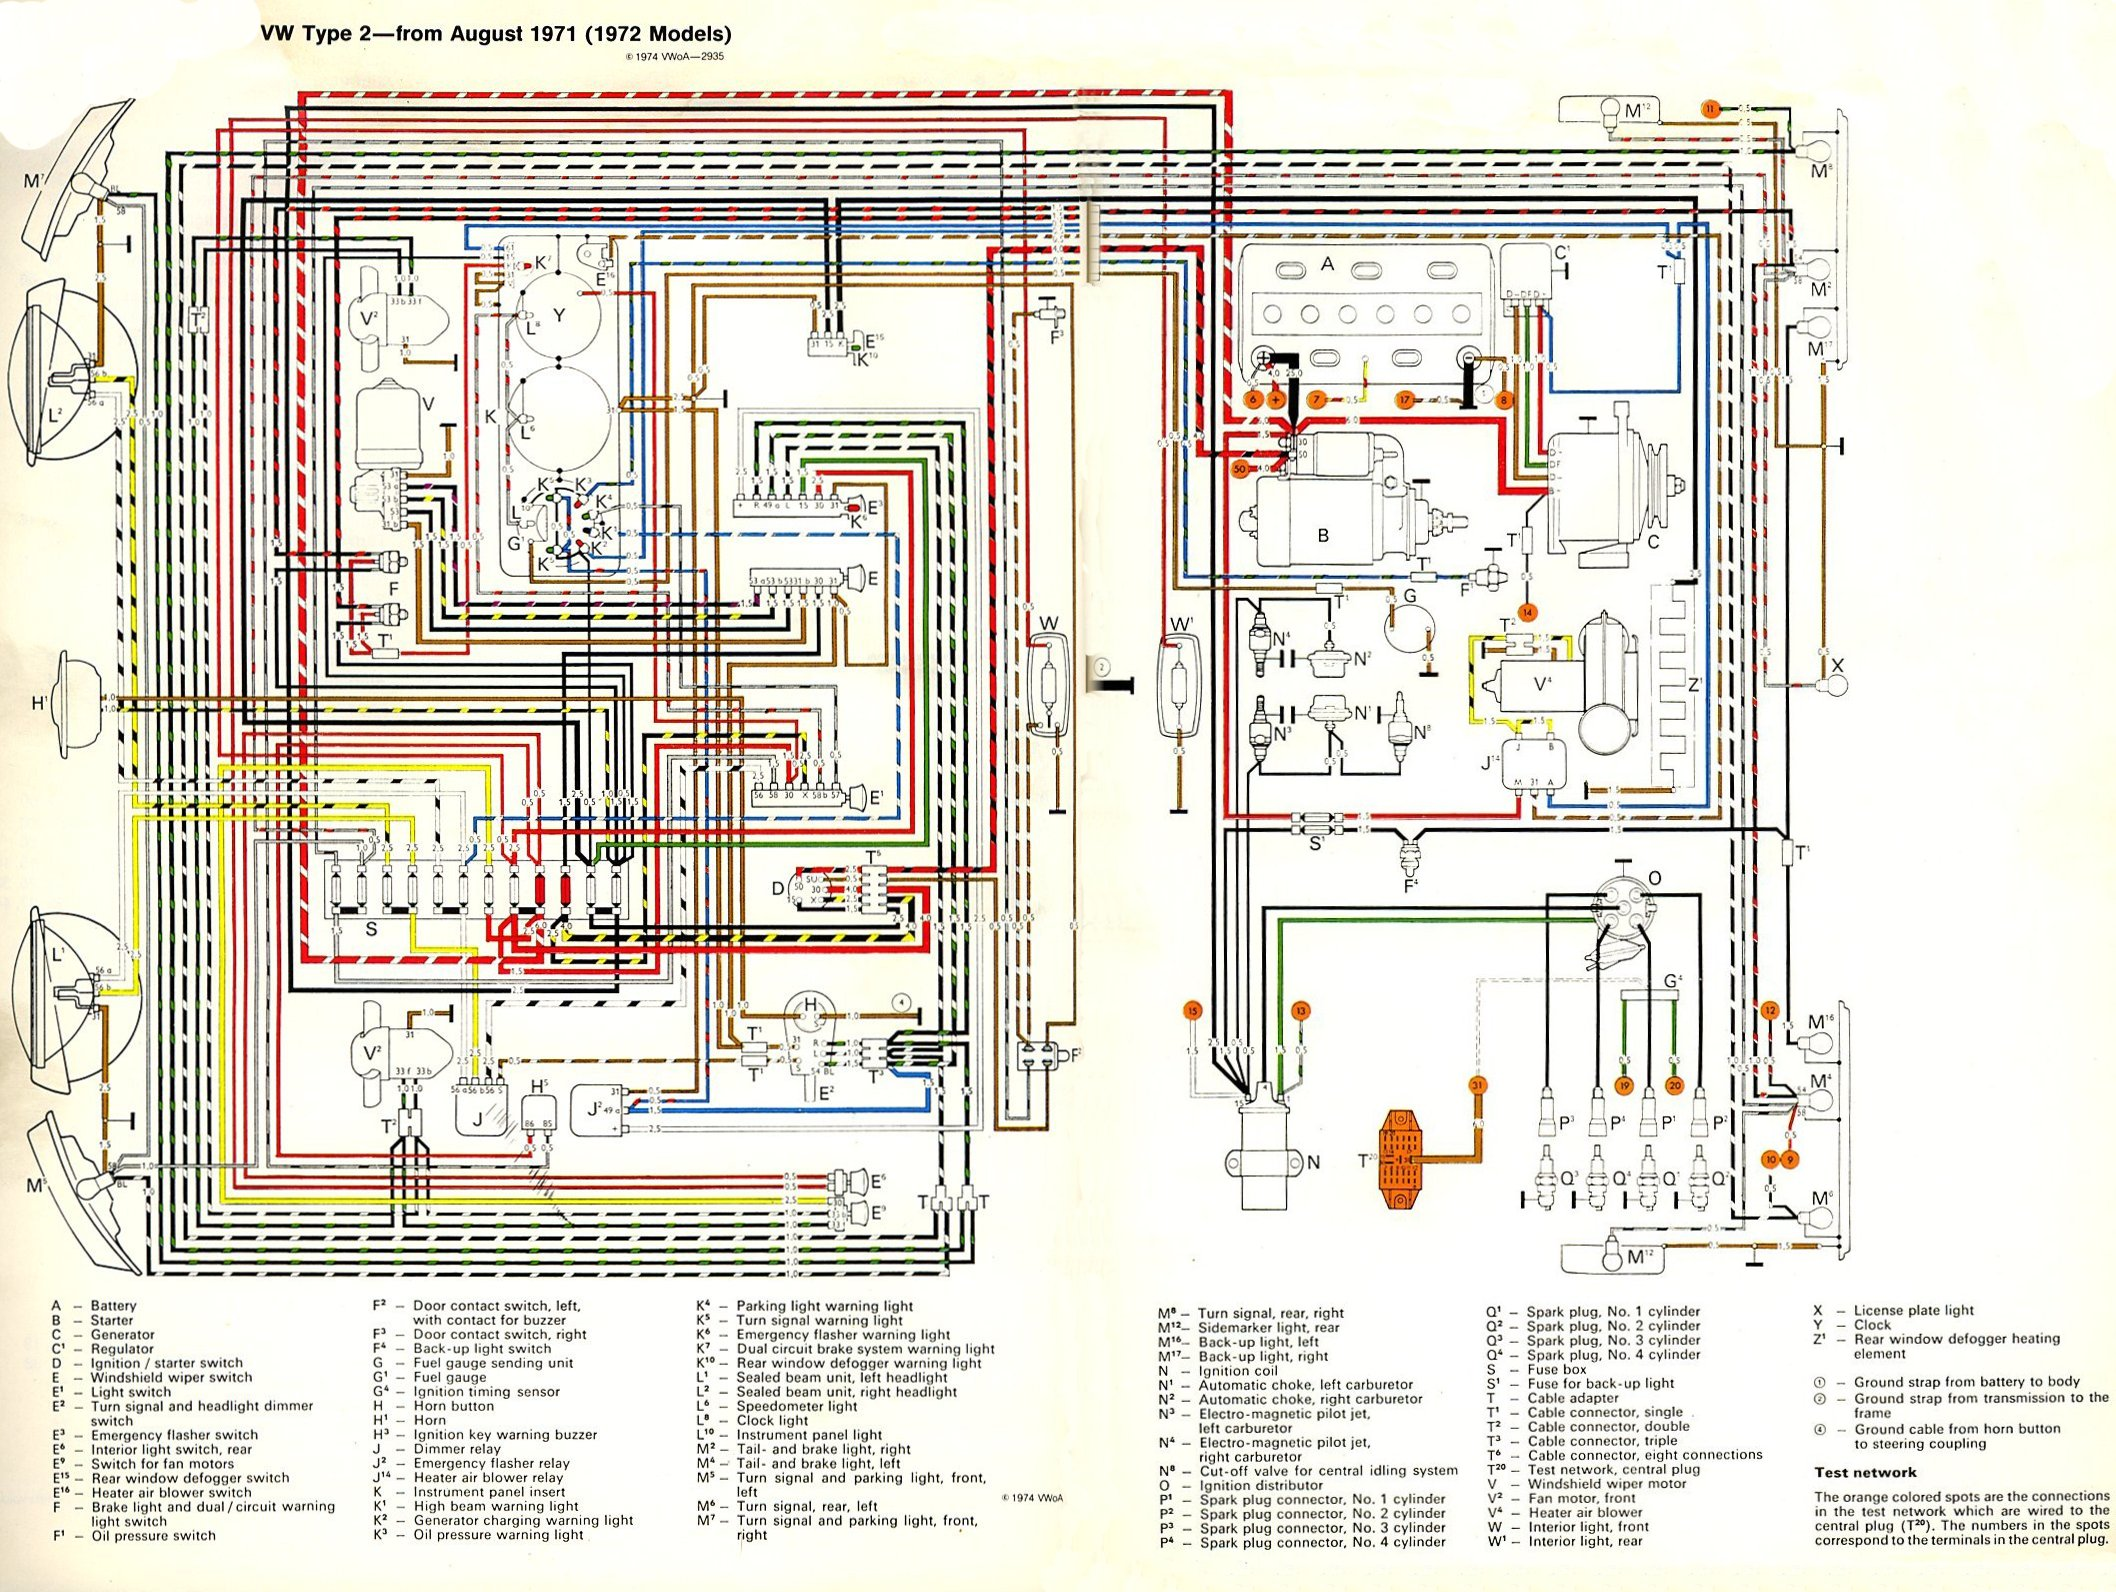 bus_1972_wiring 1977 porsche 911 wiring diagram wiring diagram simonand 1978 vw bus fuse box diagram at mr168.co